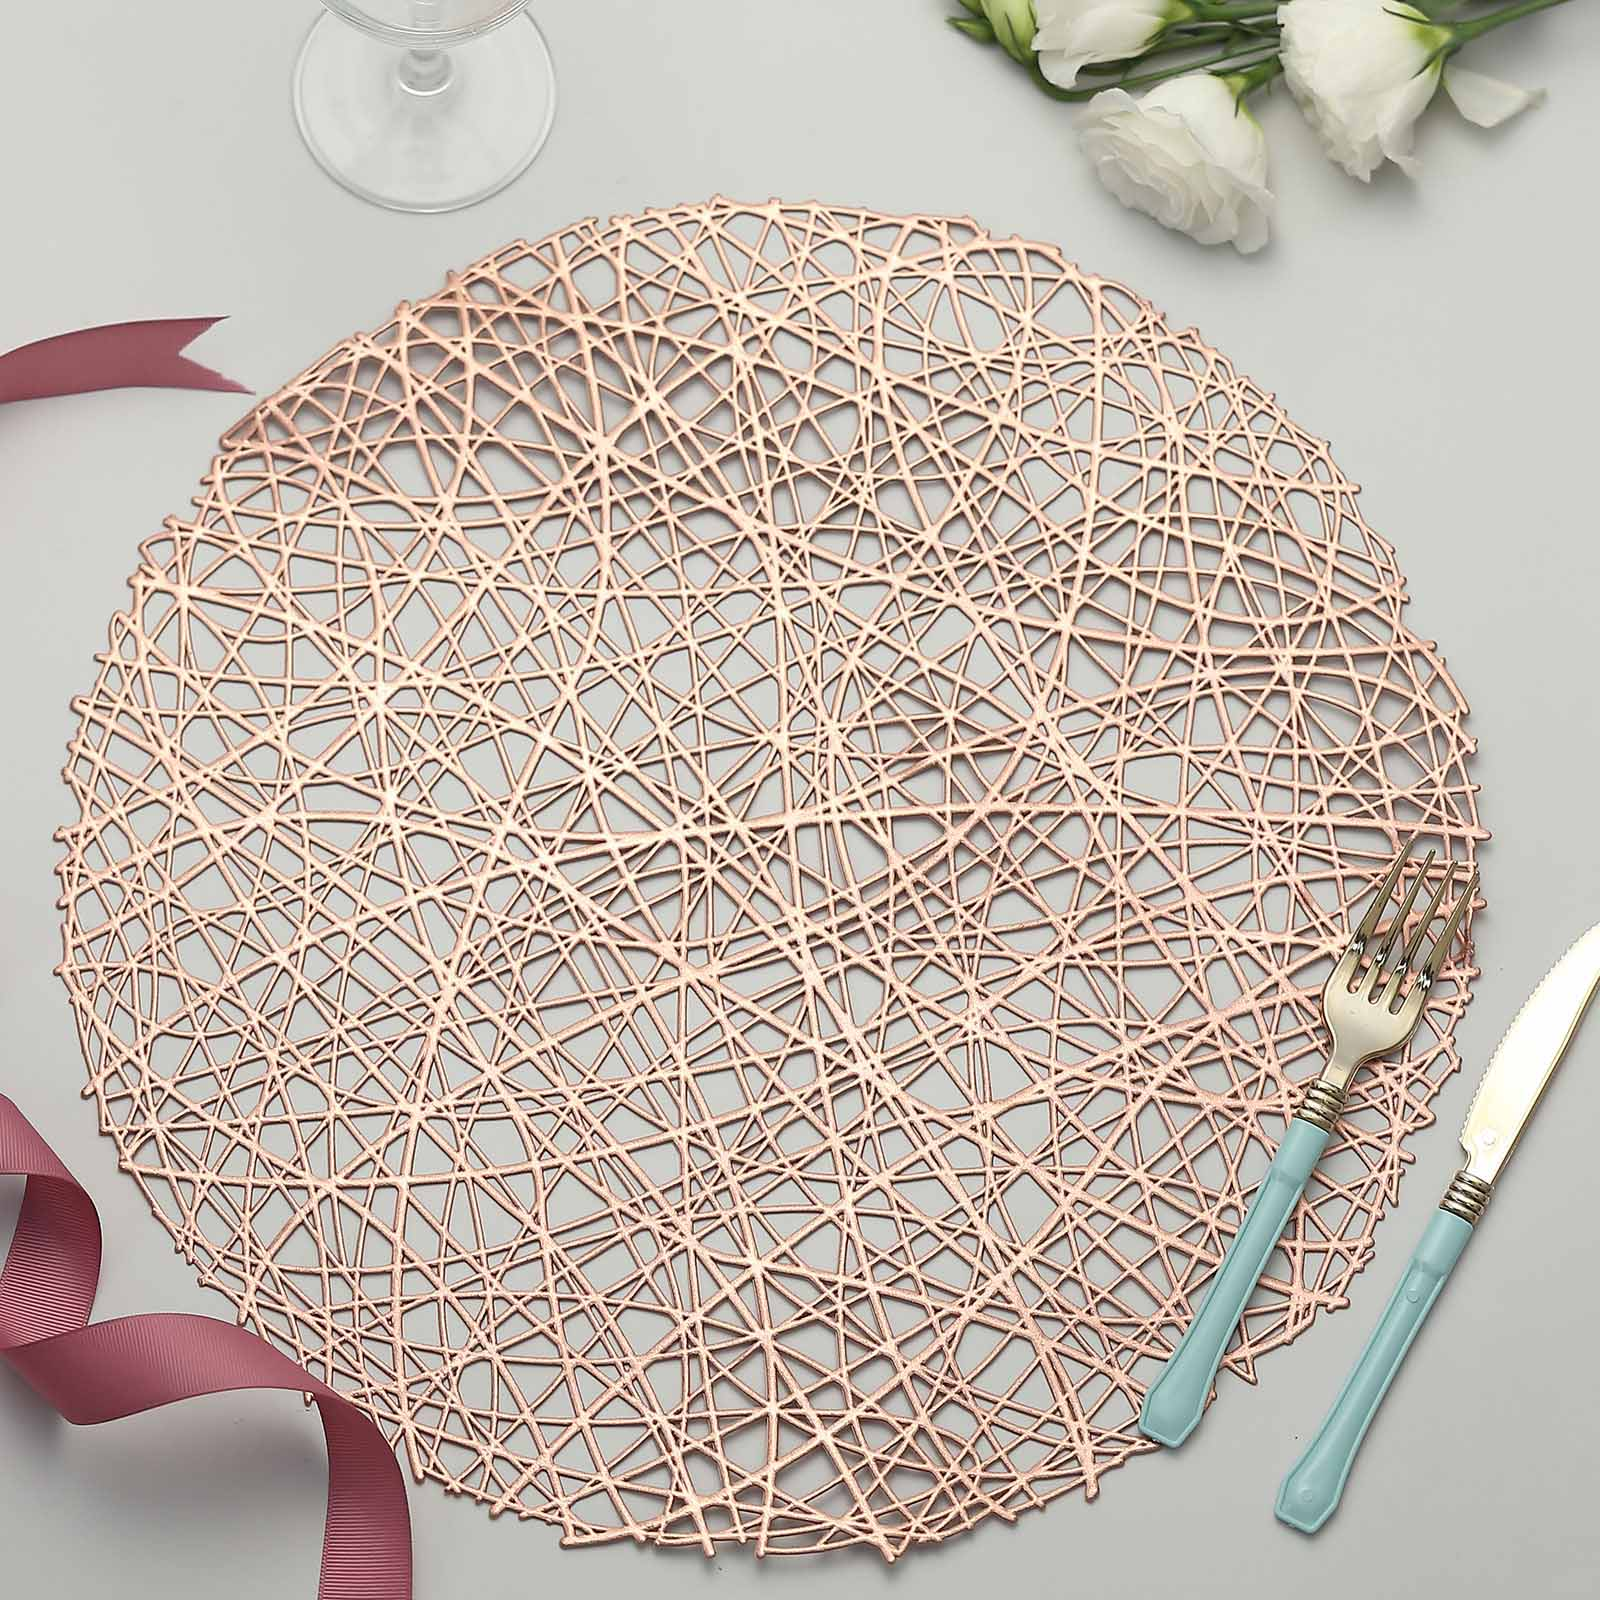 6 Pack 15 Round Woven Vinyl Placemats Non Slip Dining Table Placemats Rose Gold Blush Efavormart